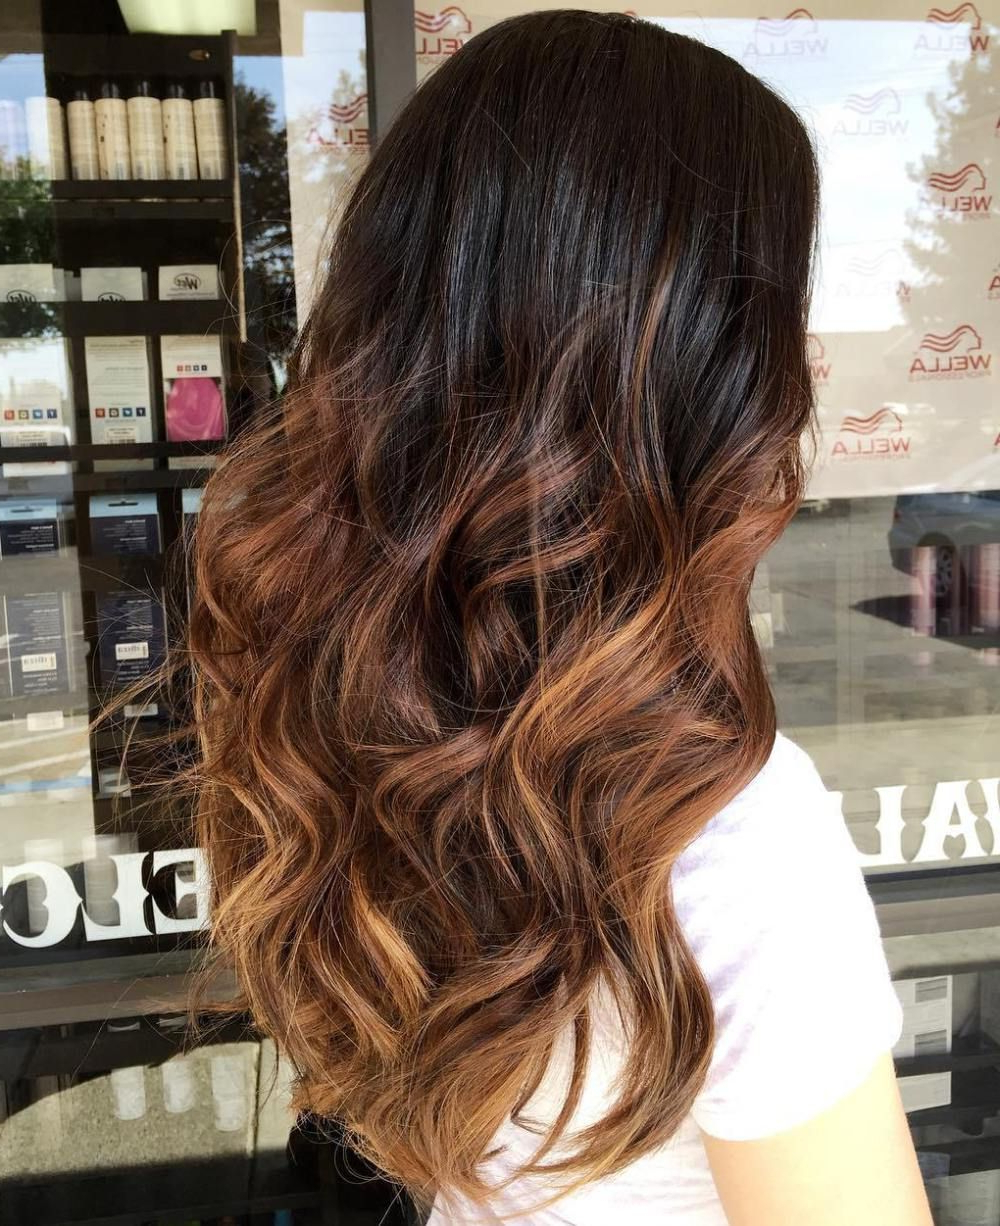 60 Chocolate Brown Hair Color Ideas For Brunettes For Trendy Deep Chocolate Curls Hairstyles With High Contrast Highlights (View 2 of 20)